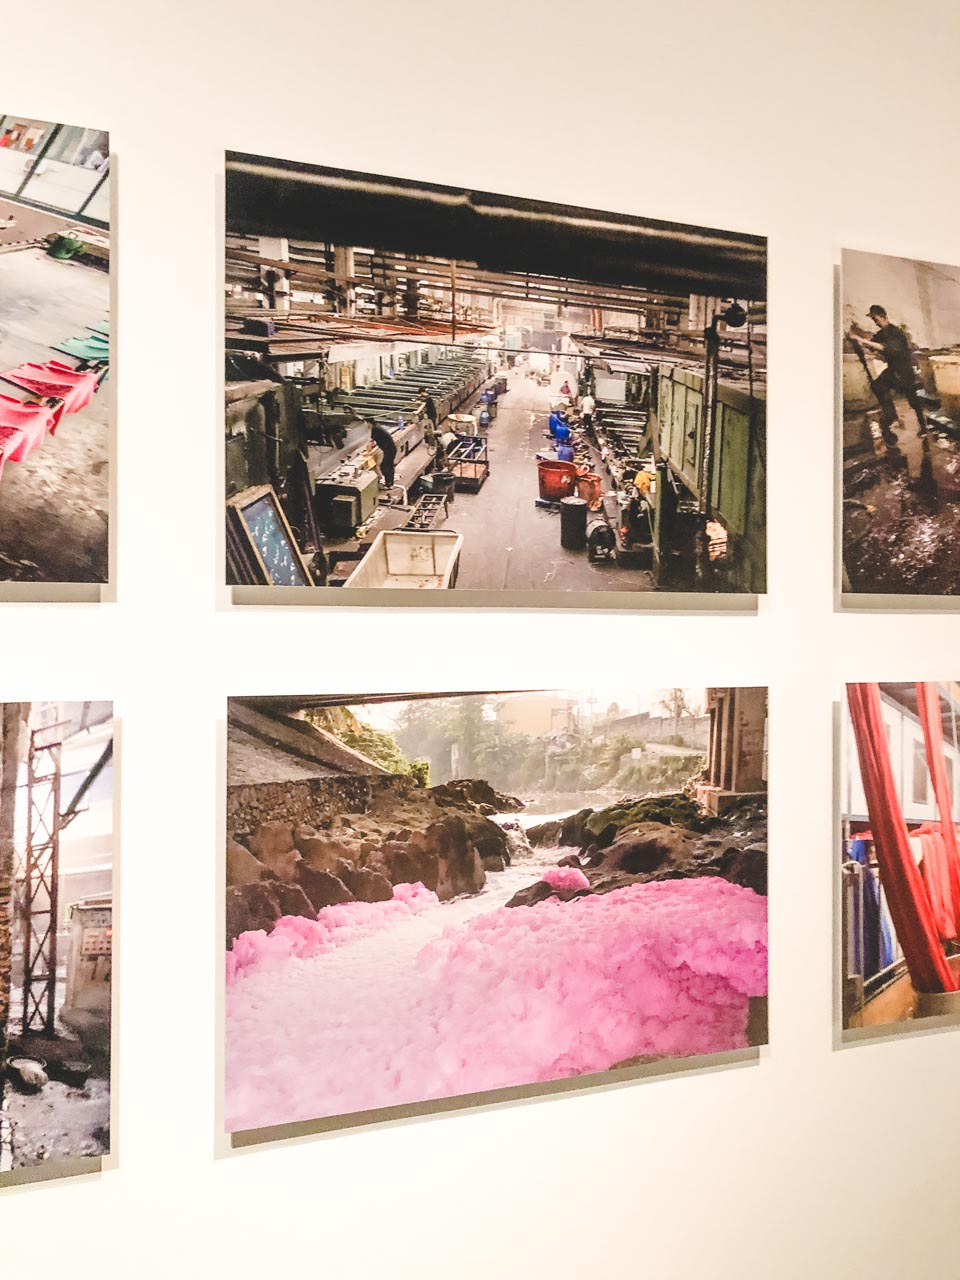 Photos of Asian factories and a river in Indonesia that turned purple due to various chemicals used in the production